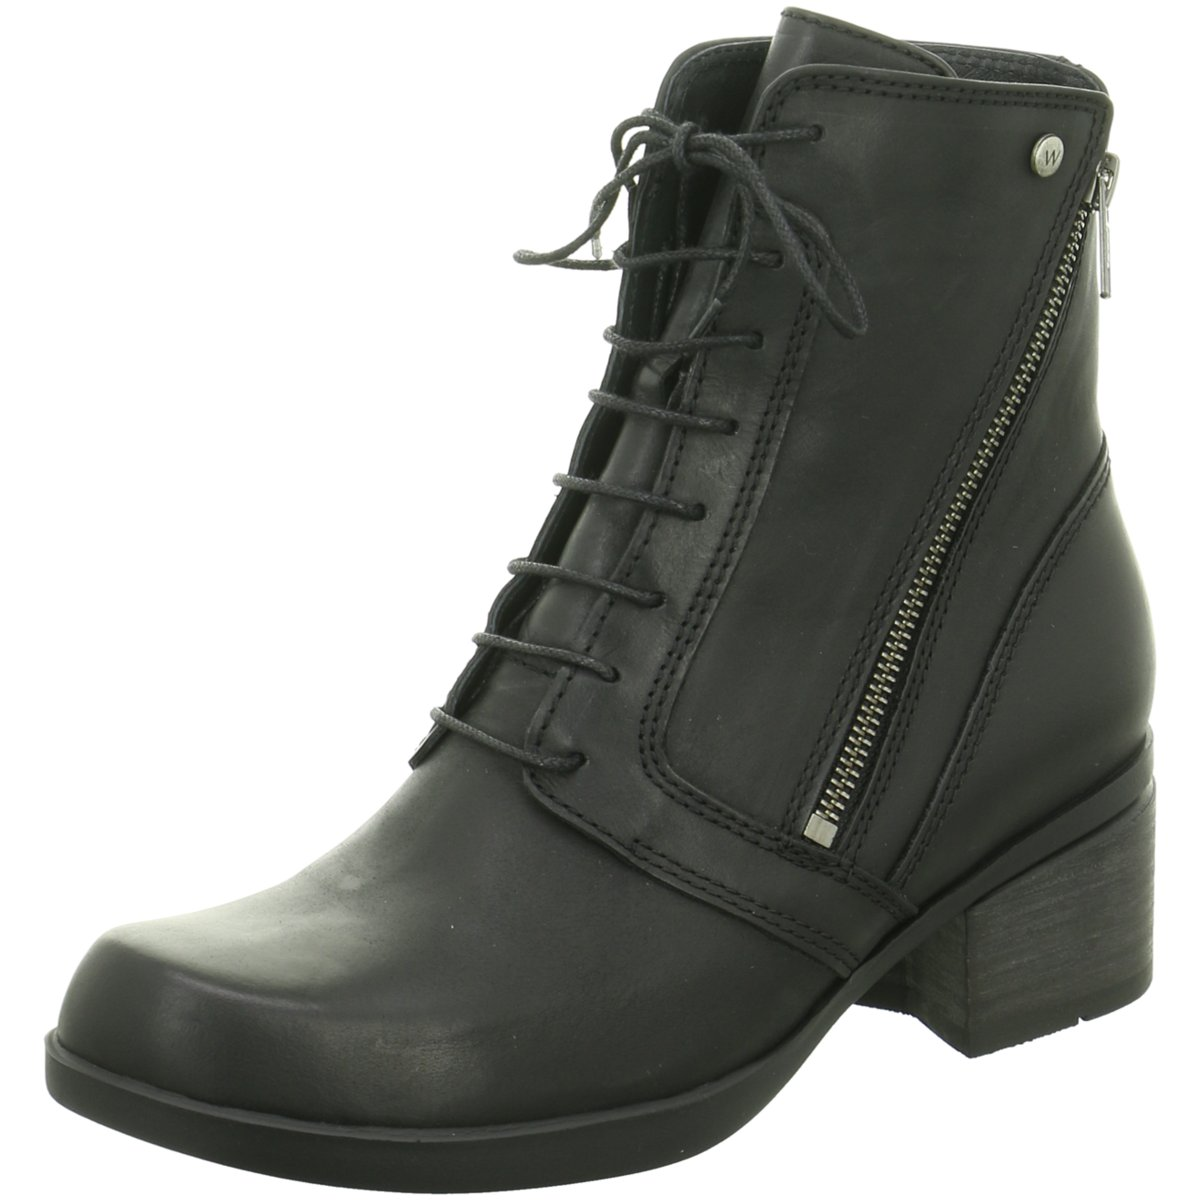 NEU Wolky Damen Stiefeletten Forth Softy Wax Black 0137730002 schwarz 326711